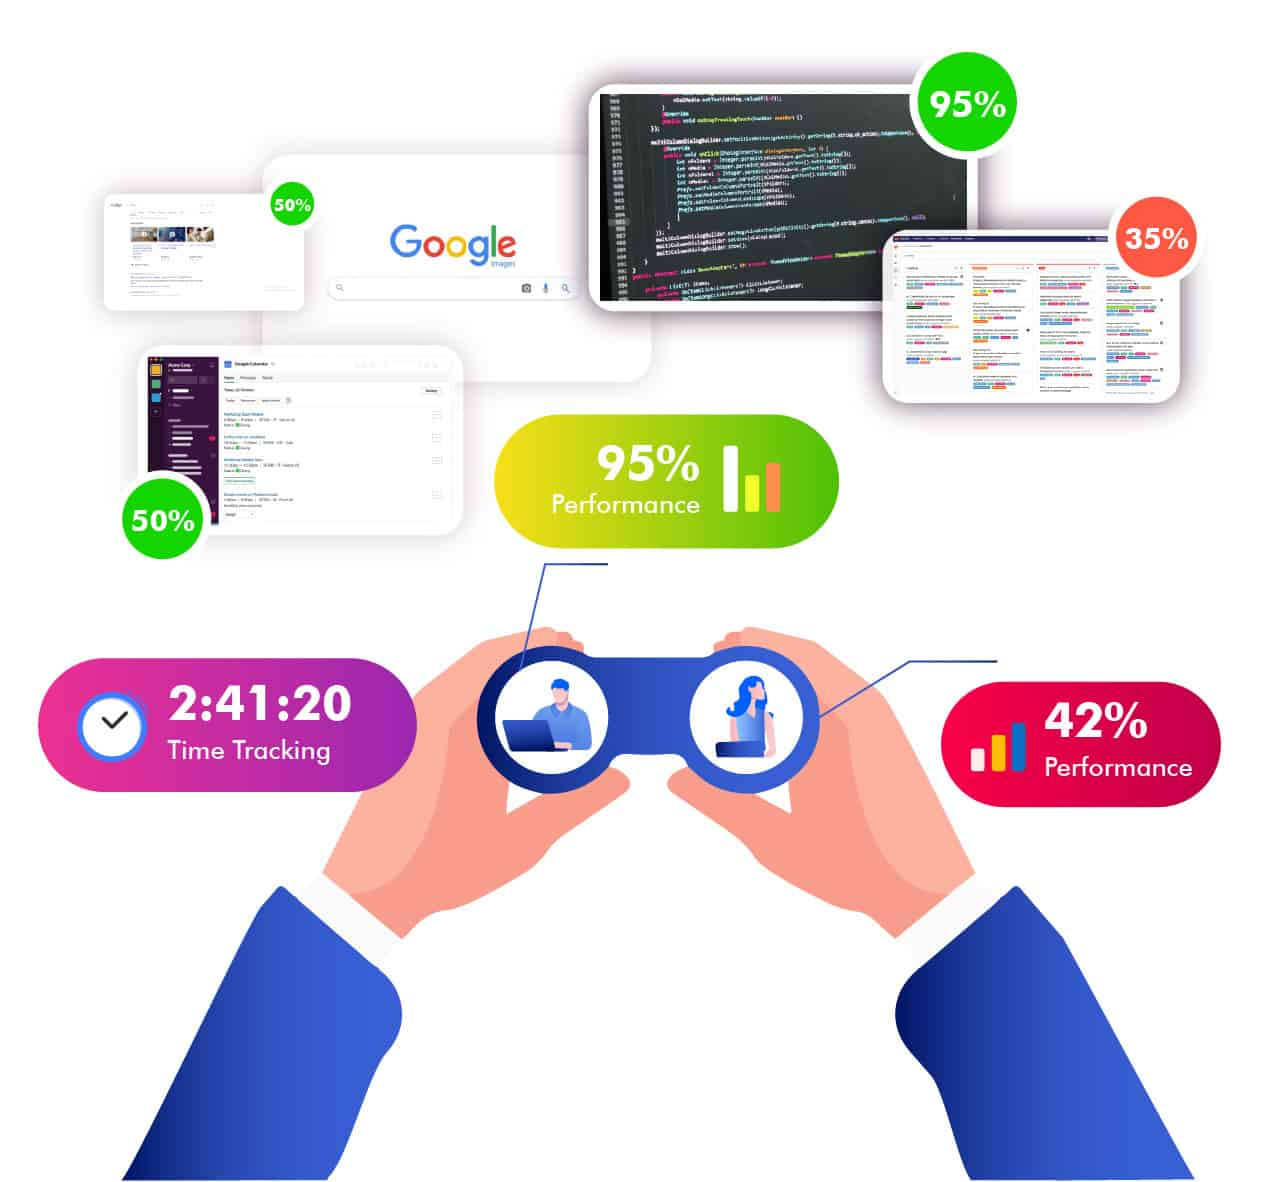 Image showcasing various aspects of employee monitoring software like performance and time tracking